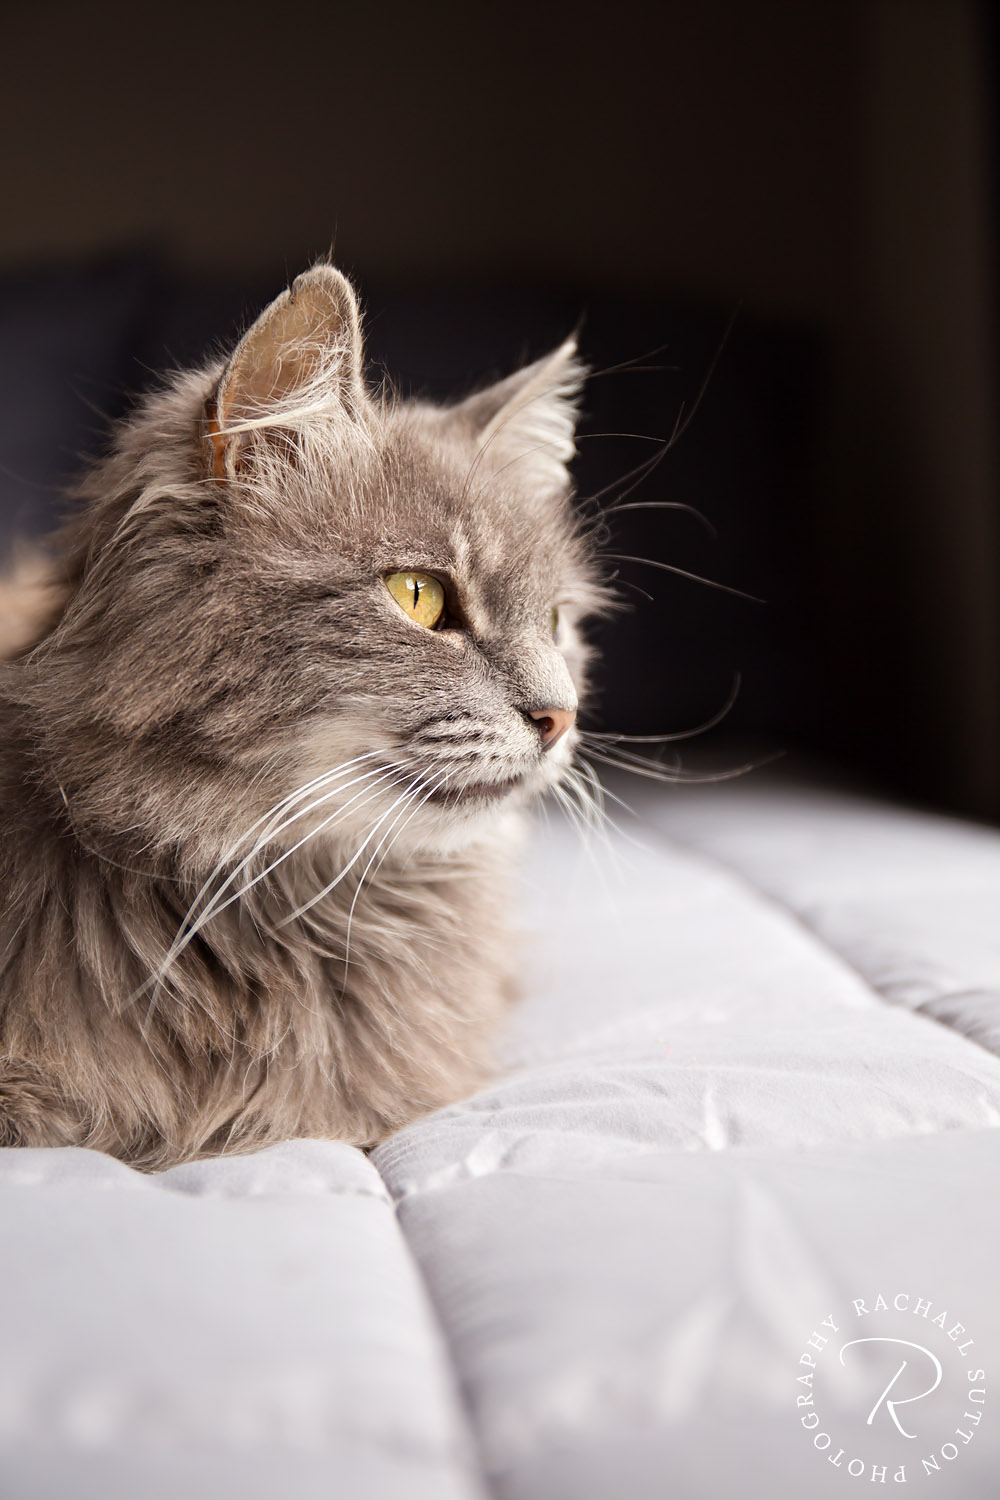 Cat lying on bed in sunlight, pet photography